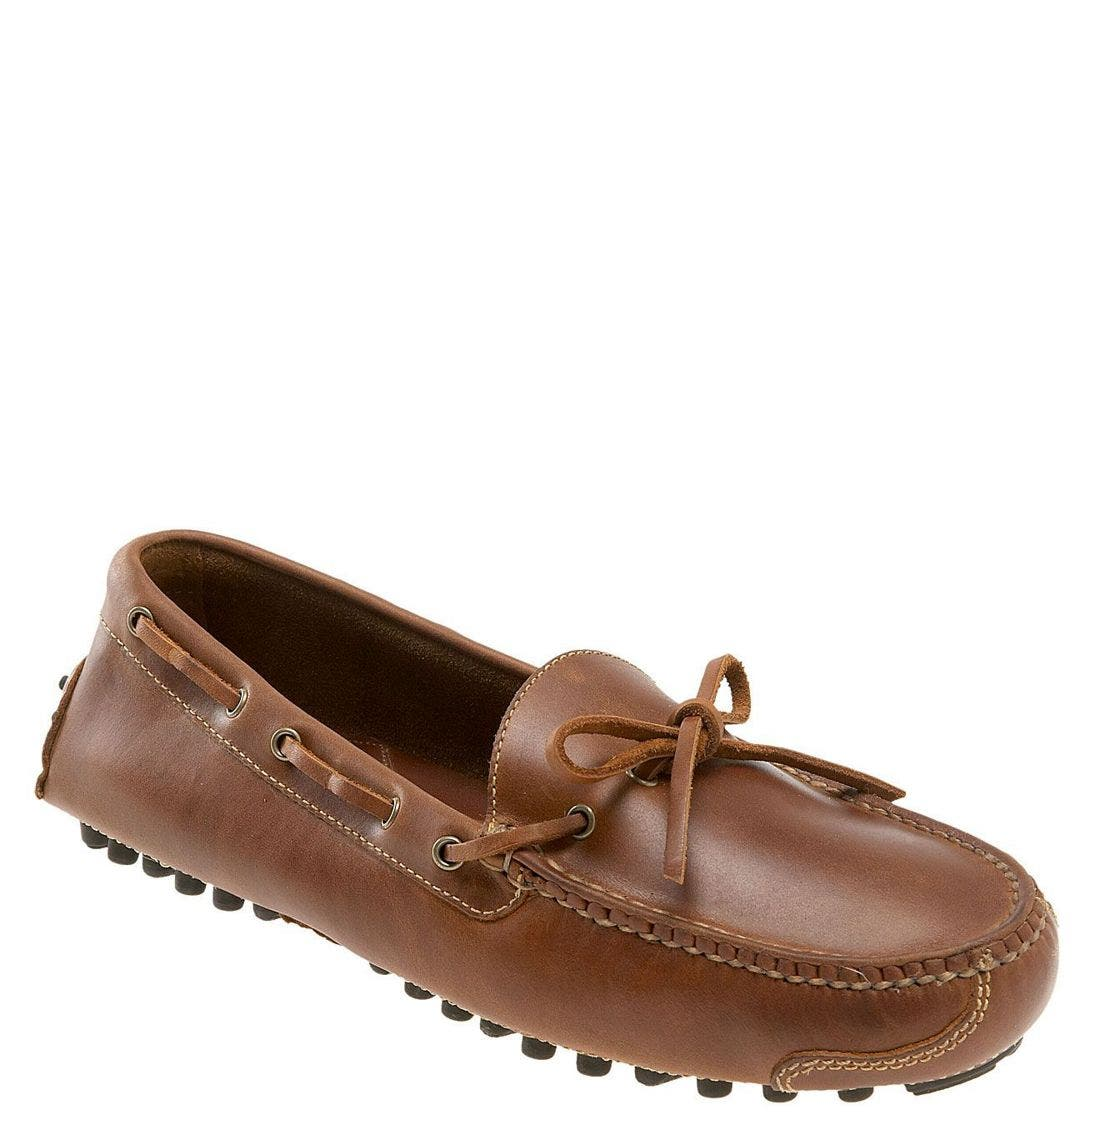 Main Image - Cole Haan 'Gunnison' Moccasin